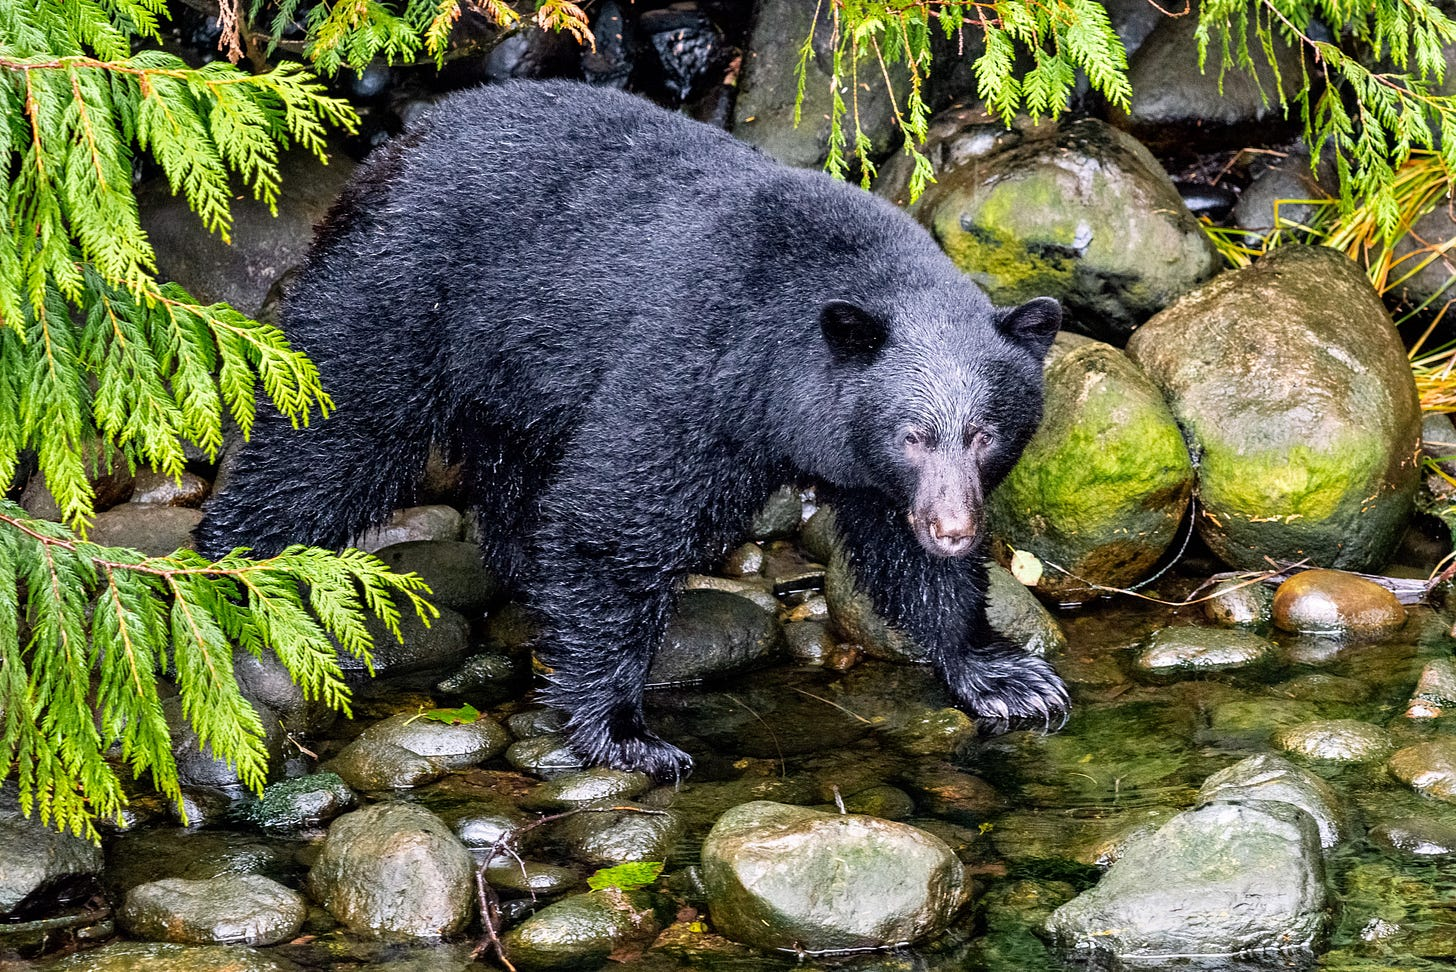 A black bear crosses a river in the forest.